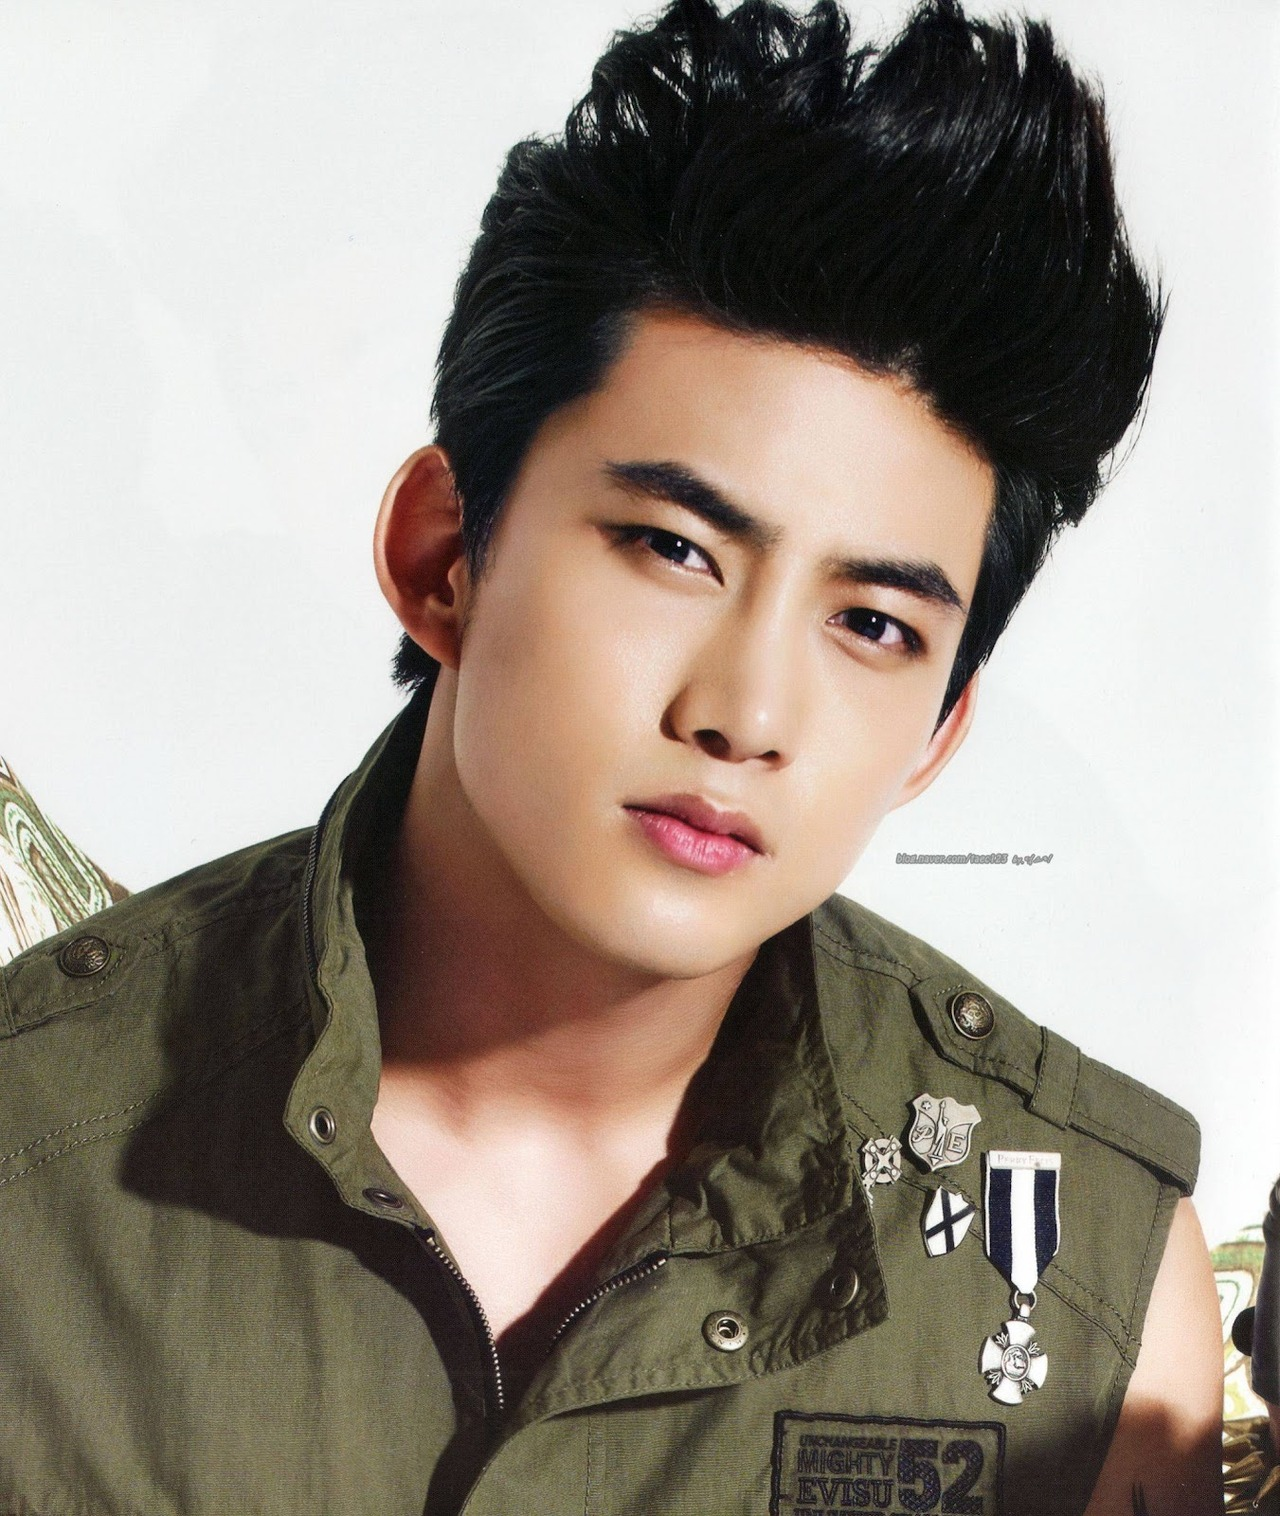 Ni nice korean girl hairstyles - Korean Hairstyles Taecyeon 2pm Korean Hairstyles Korean Hairstyles